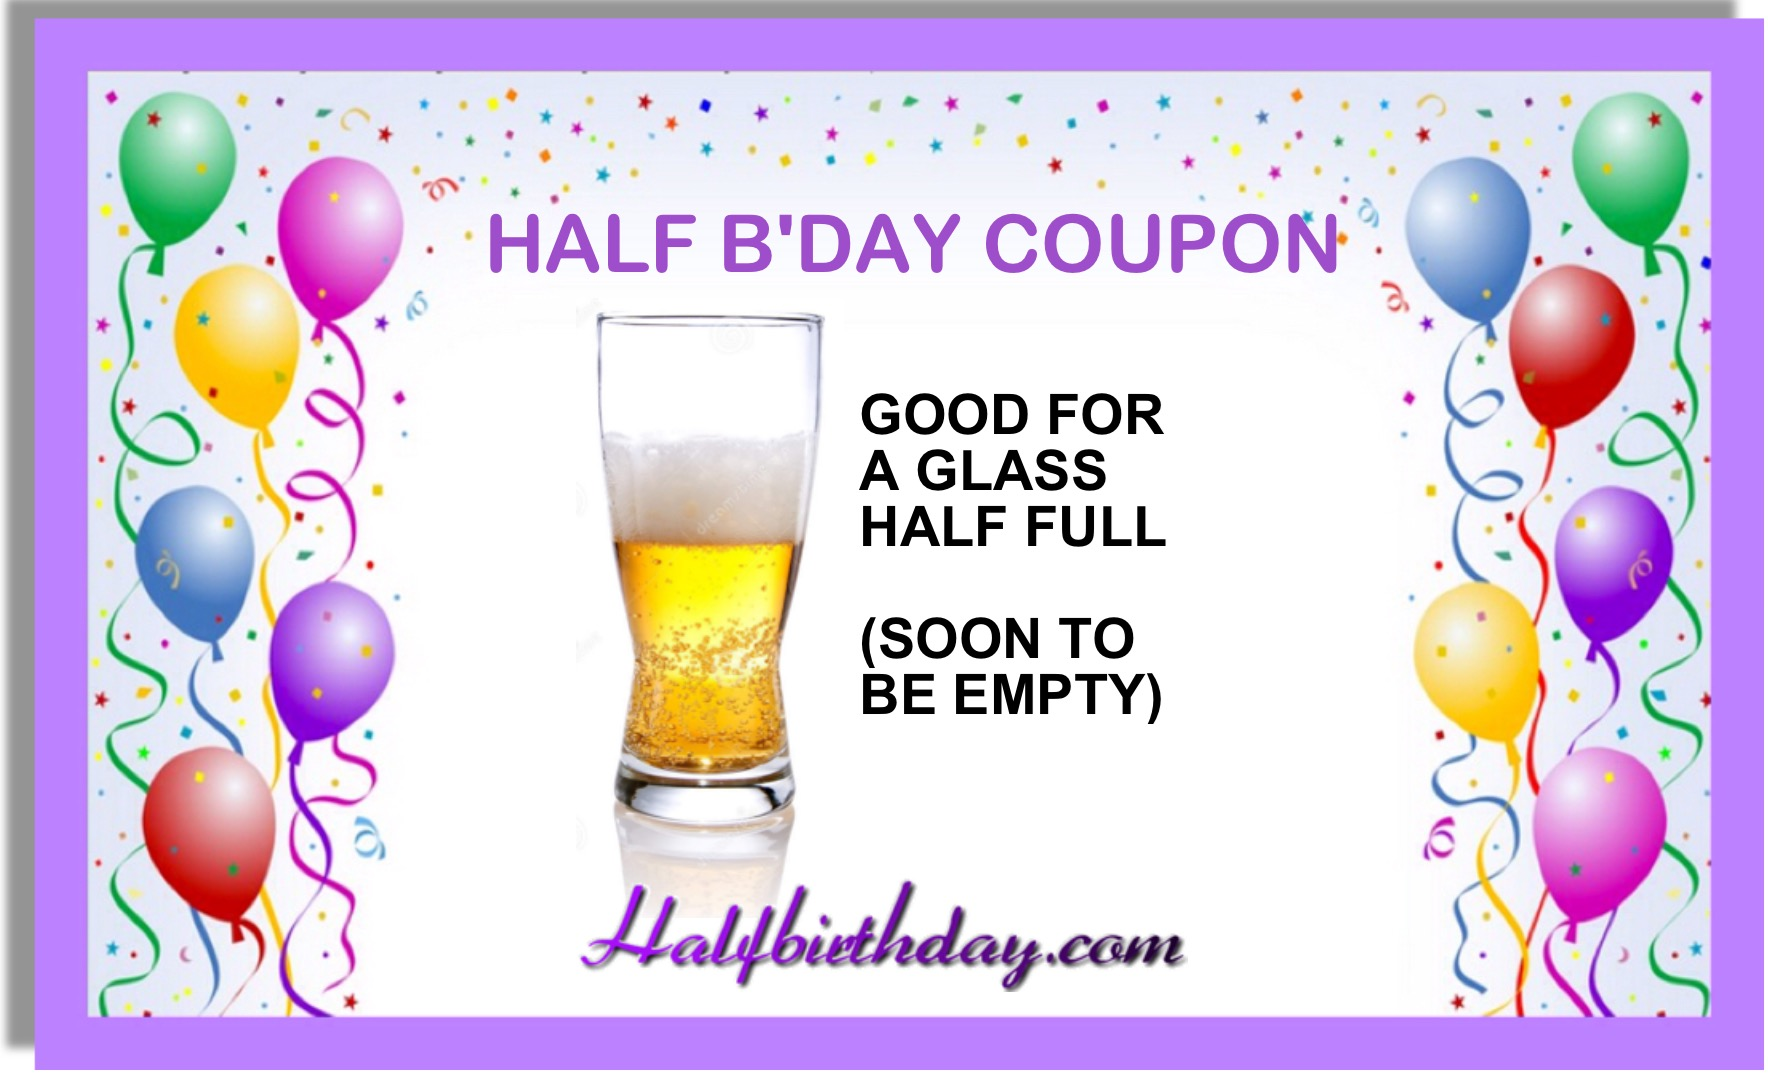 Half Glass of Beer Coupon